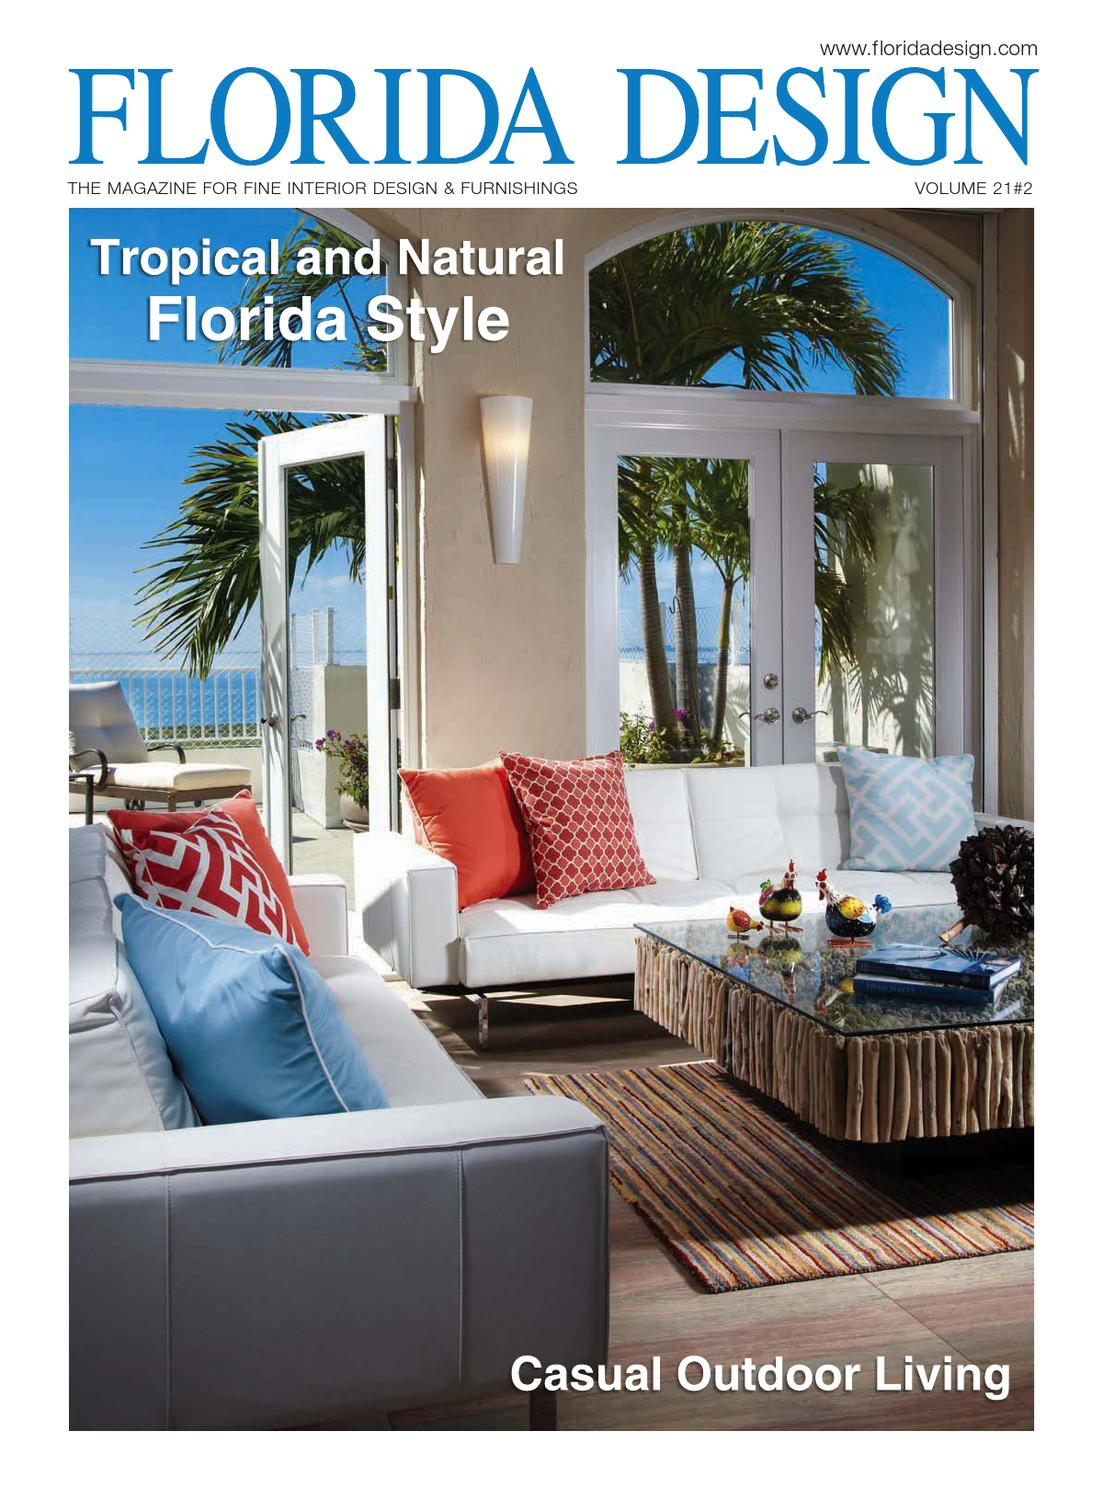 Florida design magazine by bill fleak issuu for Designs magazine